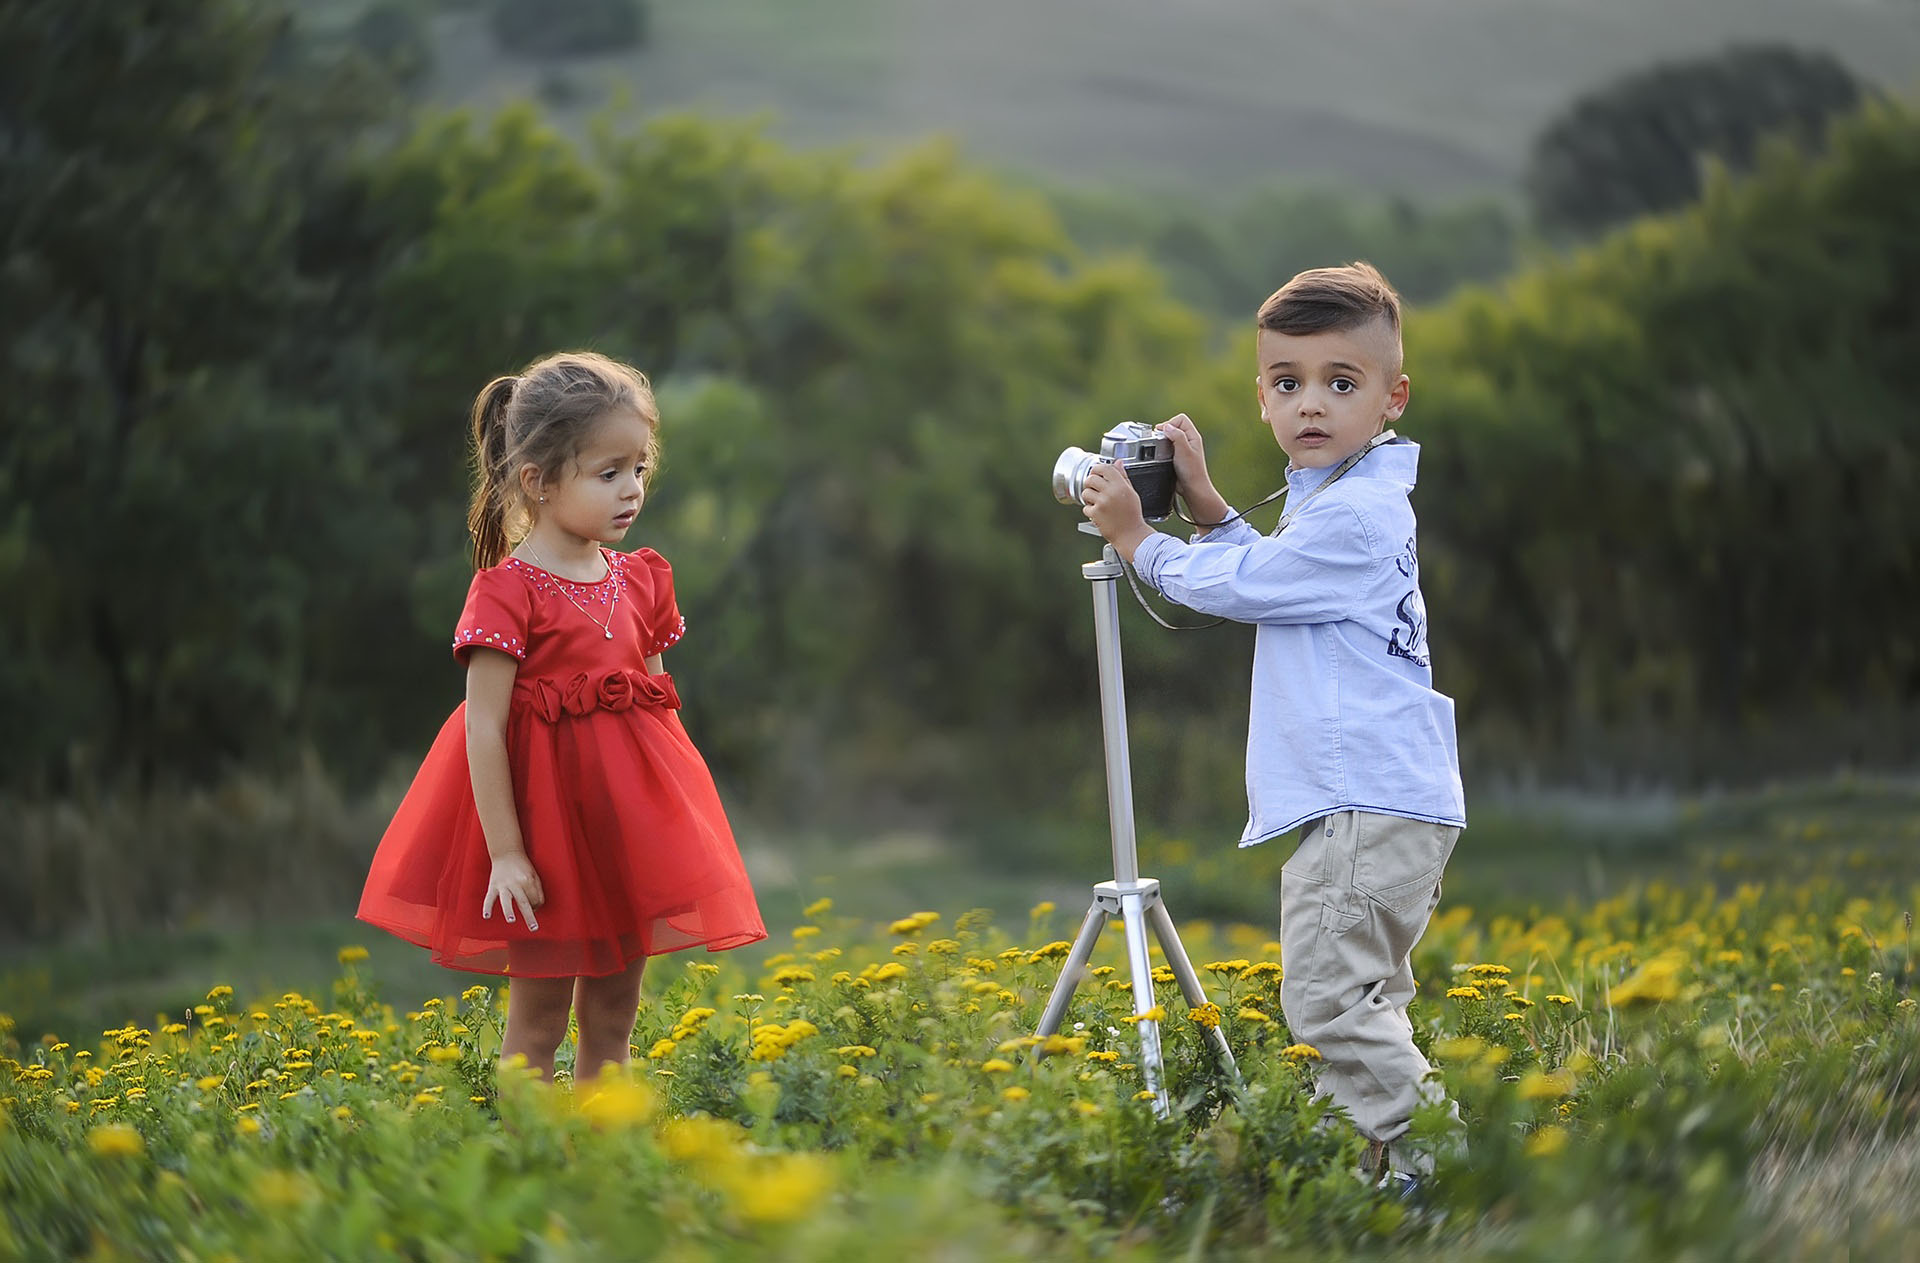 photographer, posing, child, sister,